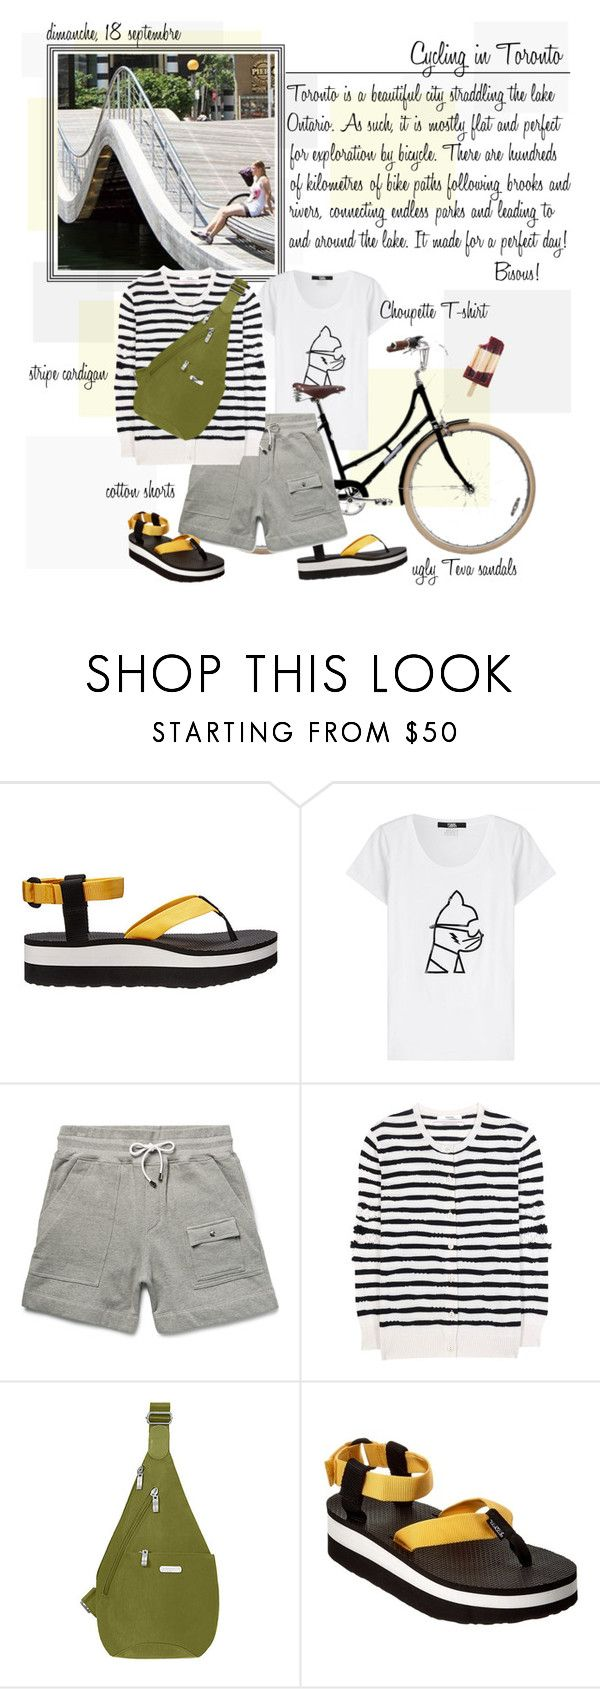 """Mon Style № 100 - September 18, 2016"" by mon-style-diary ❤ liked on Polyvore featuring Teva, Karl Lagerfeld, Michael Bastian, Barrie, Baggallini, uglyshoes and tevas"